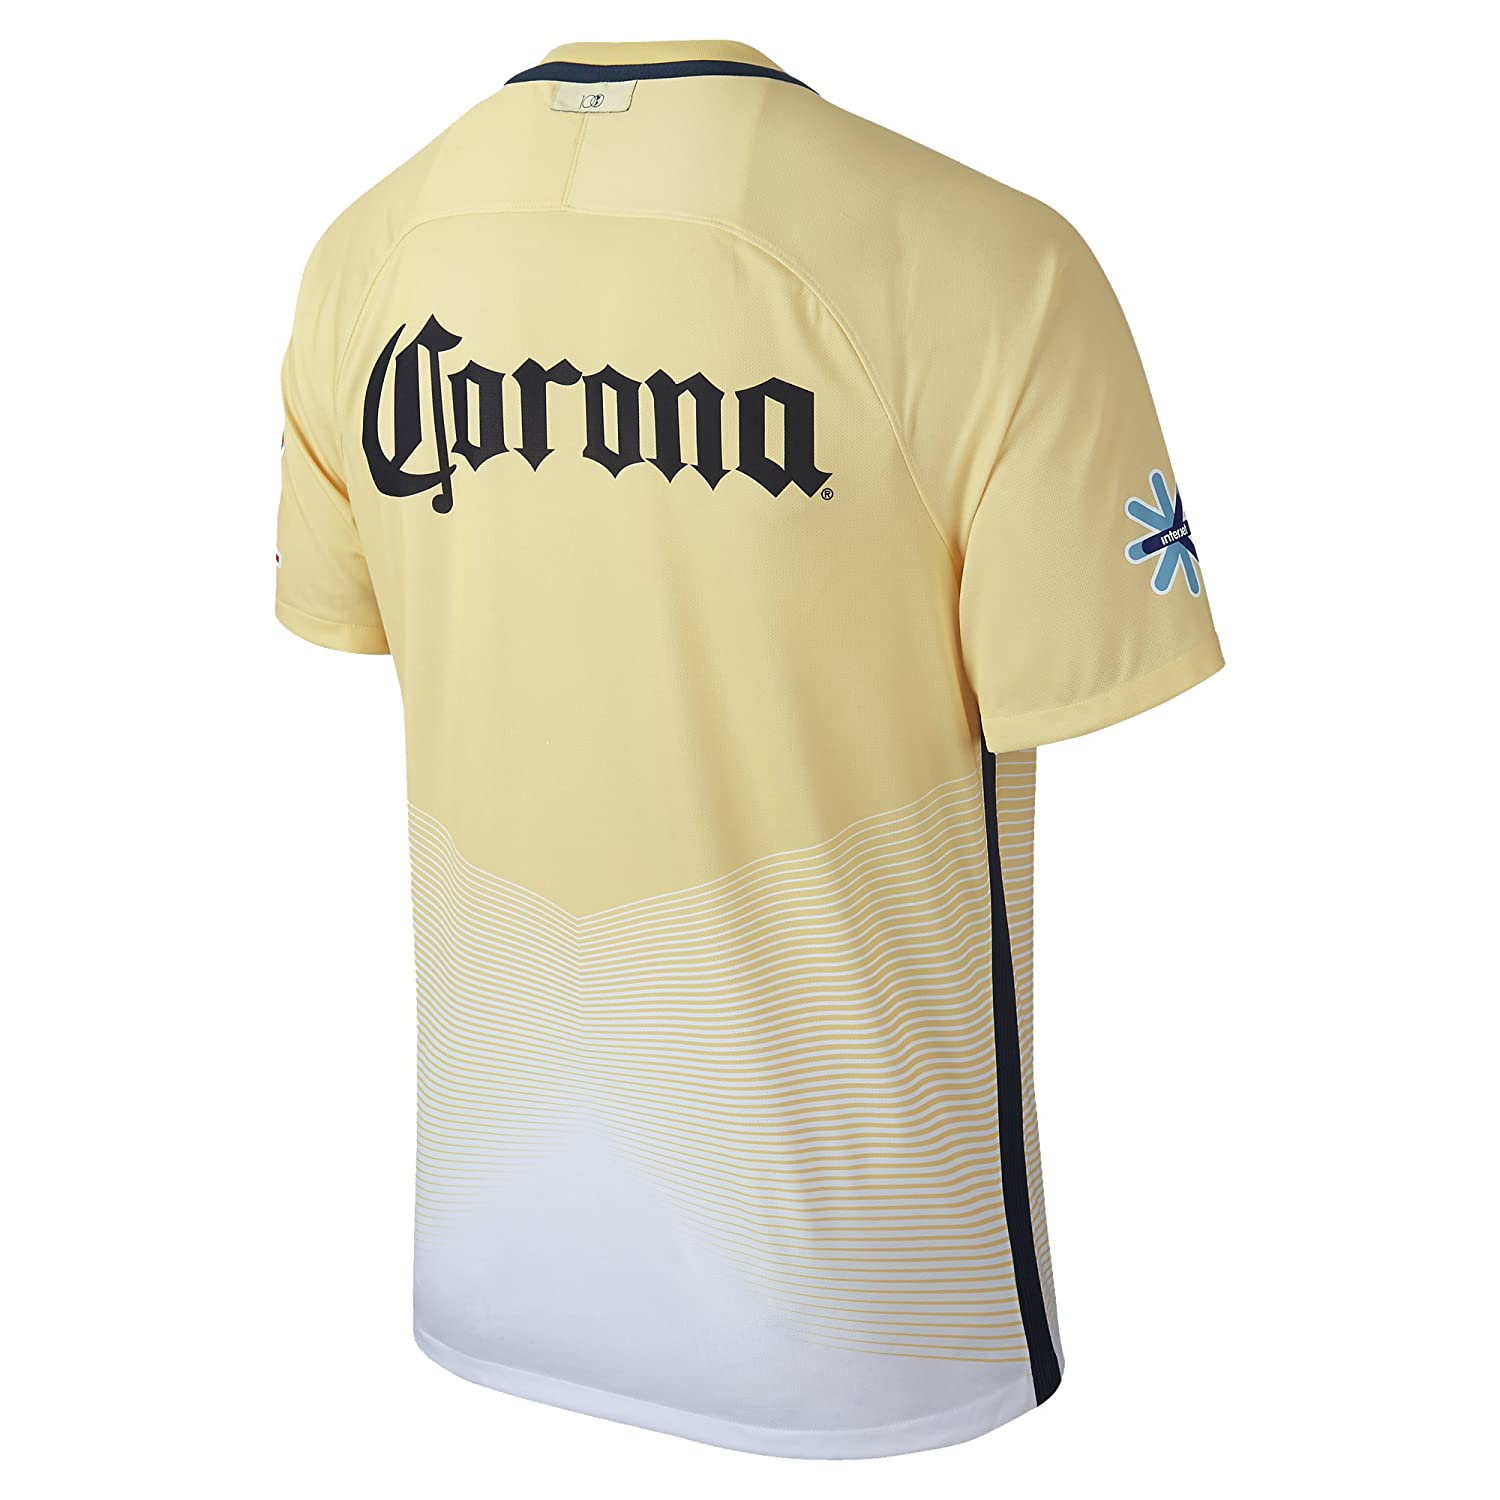 63a8008b3a7 Amazon.com   Nike Mens Club America Stadium Jersey-LEMON CHIFFON (S)    Sports   Outdoors